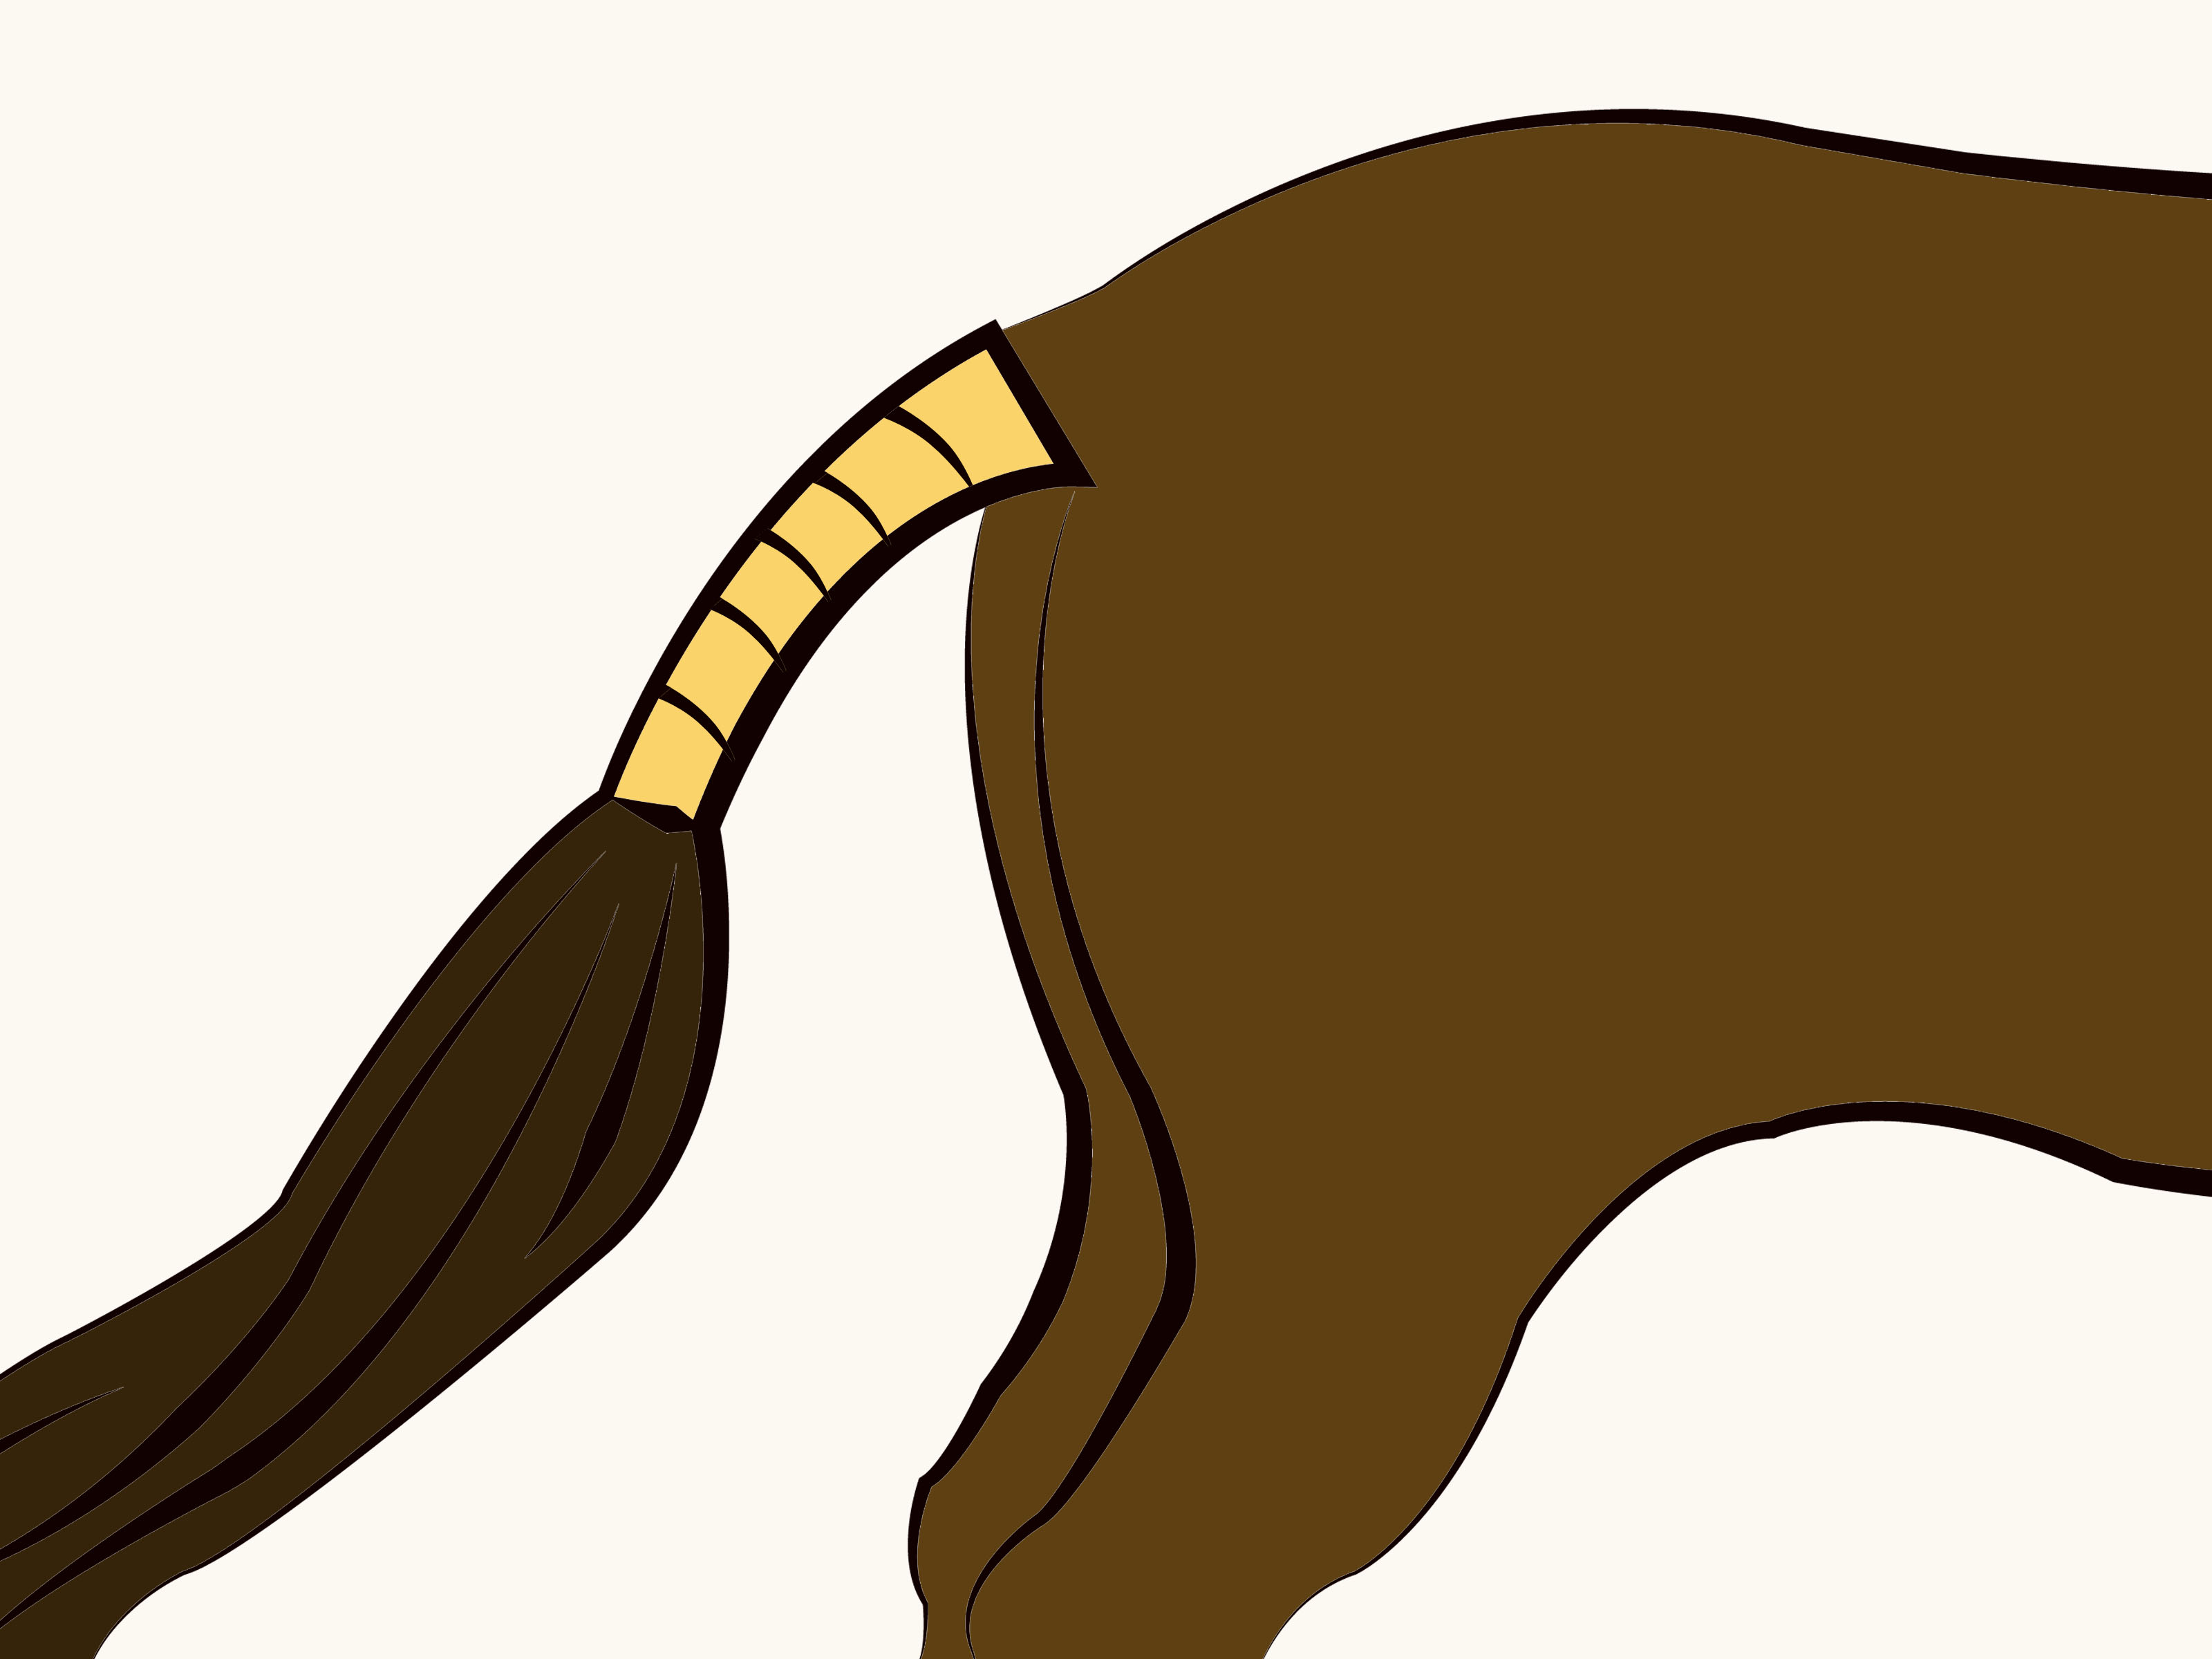 Tail clipart Horse Horse Tail Clipart tail